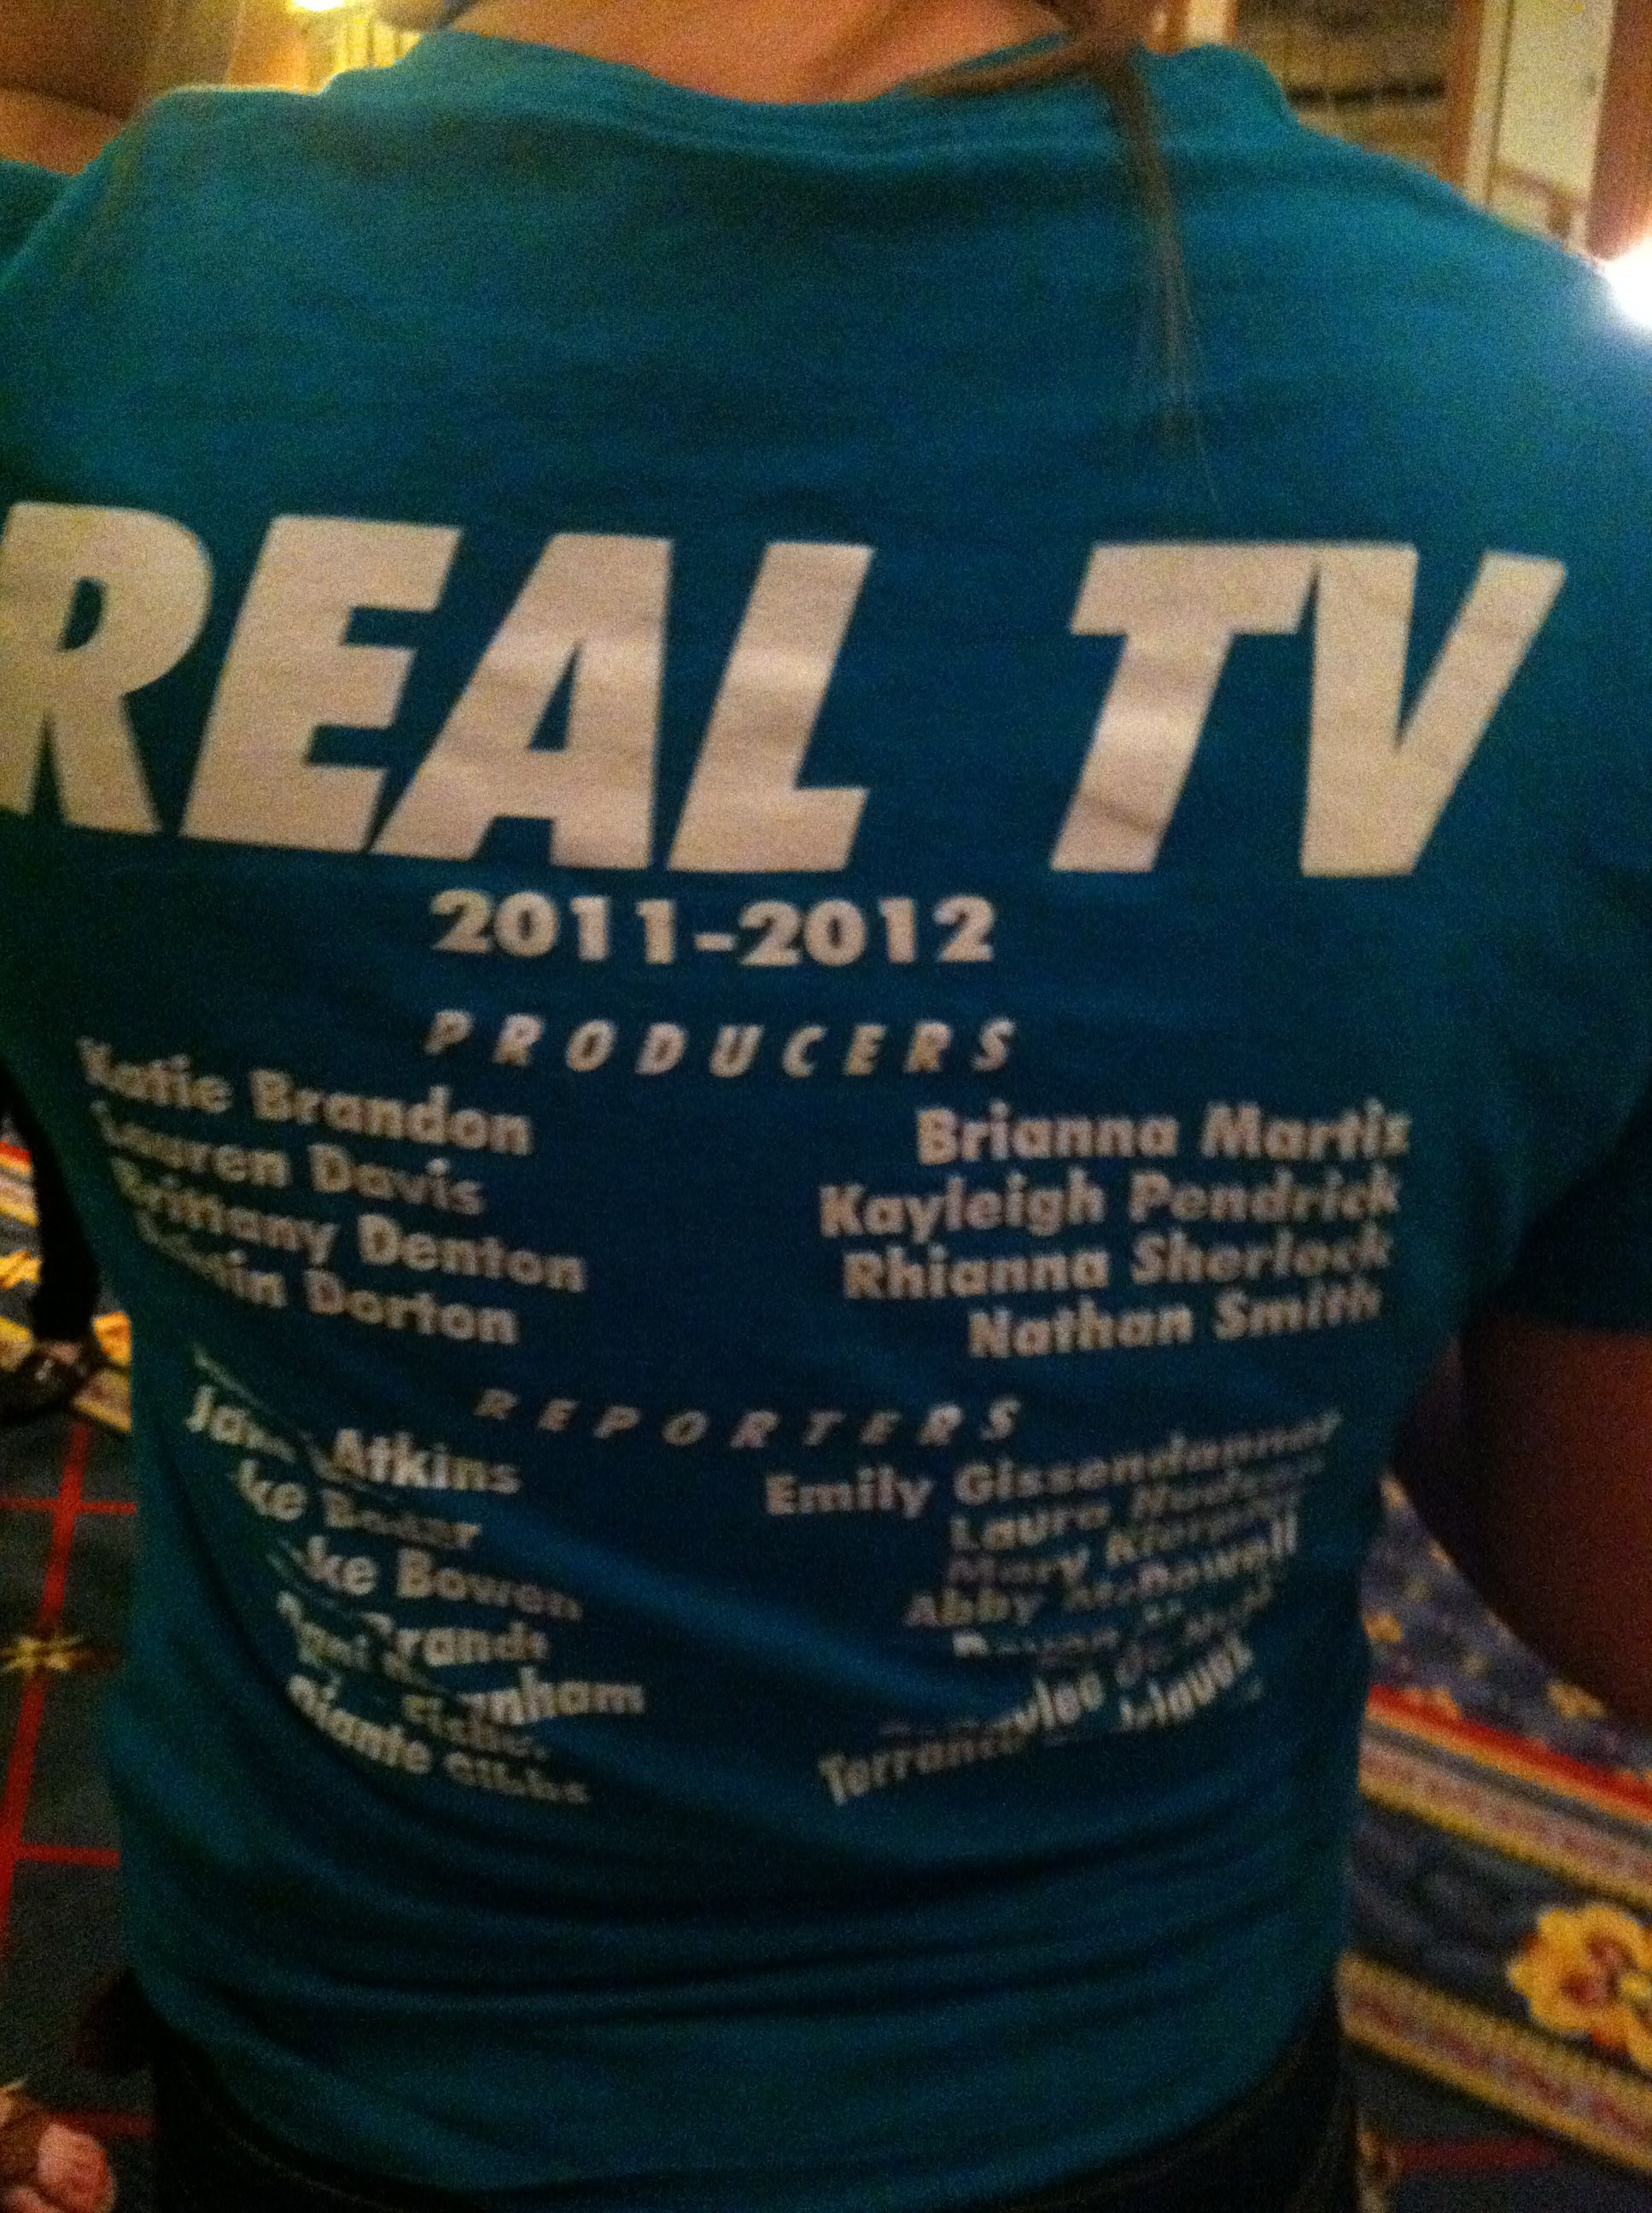 The back of a T-shirt spotted at the Southern Interscholastic Press Association's Courage To Connect Convention March 2, 2012.